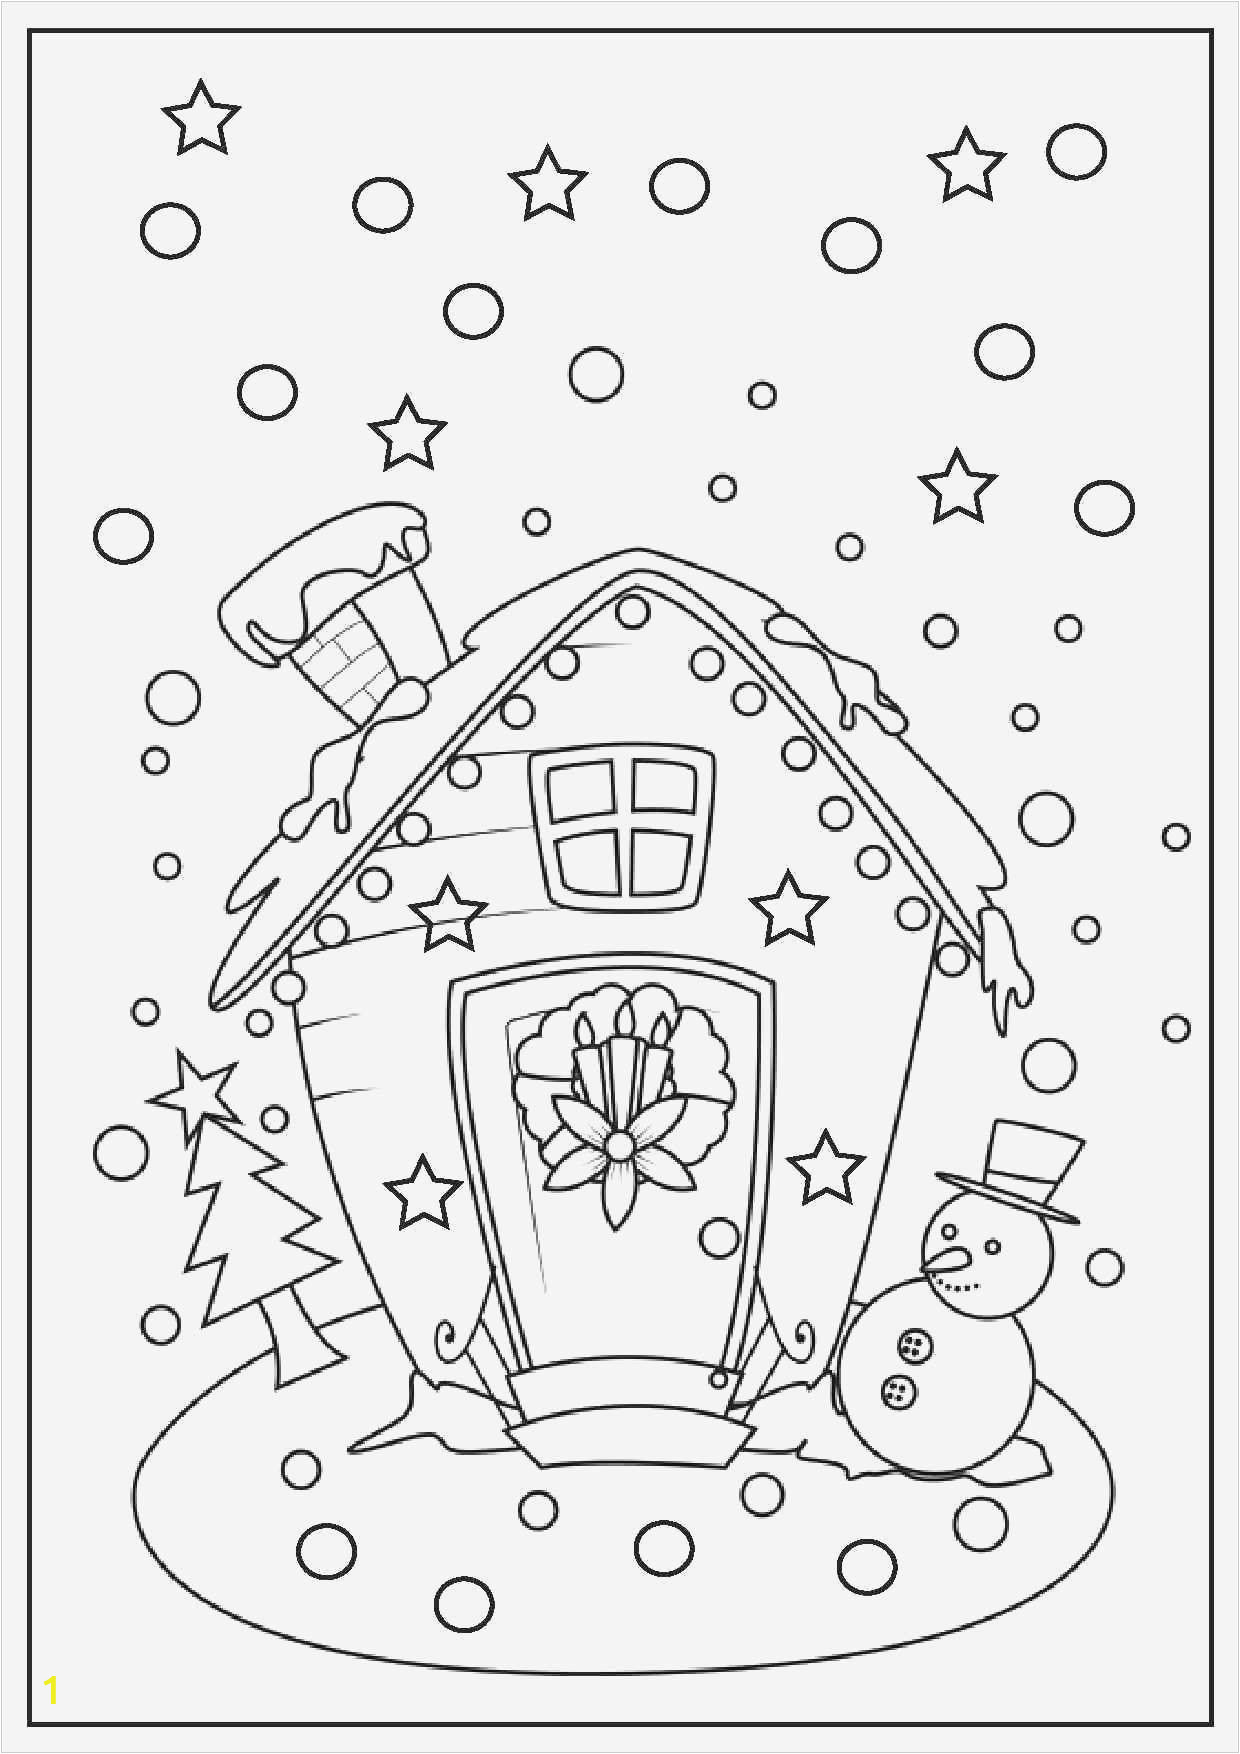 Free Printable Christmas Coloring Pages Disney Coloring by Numbers